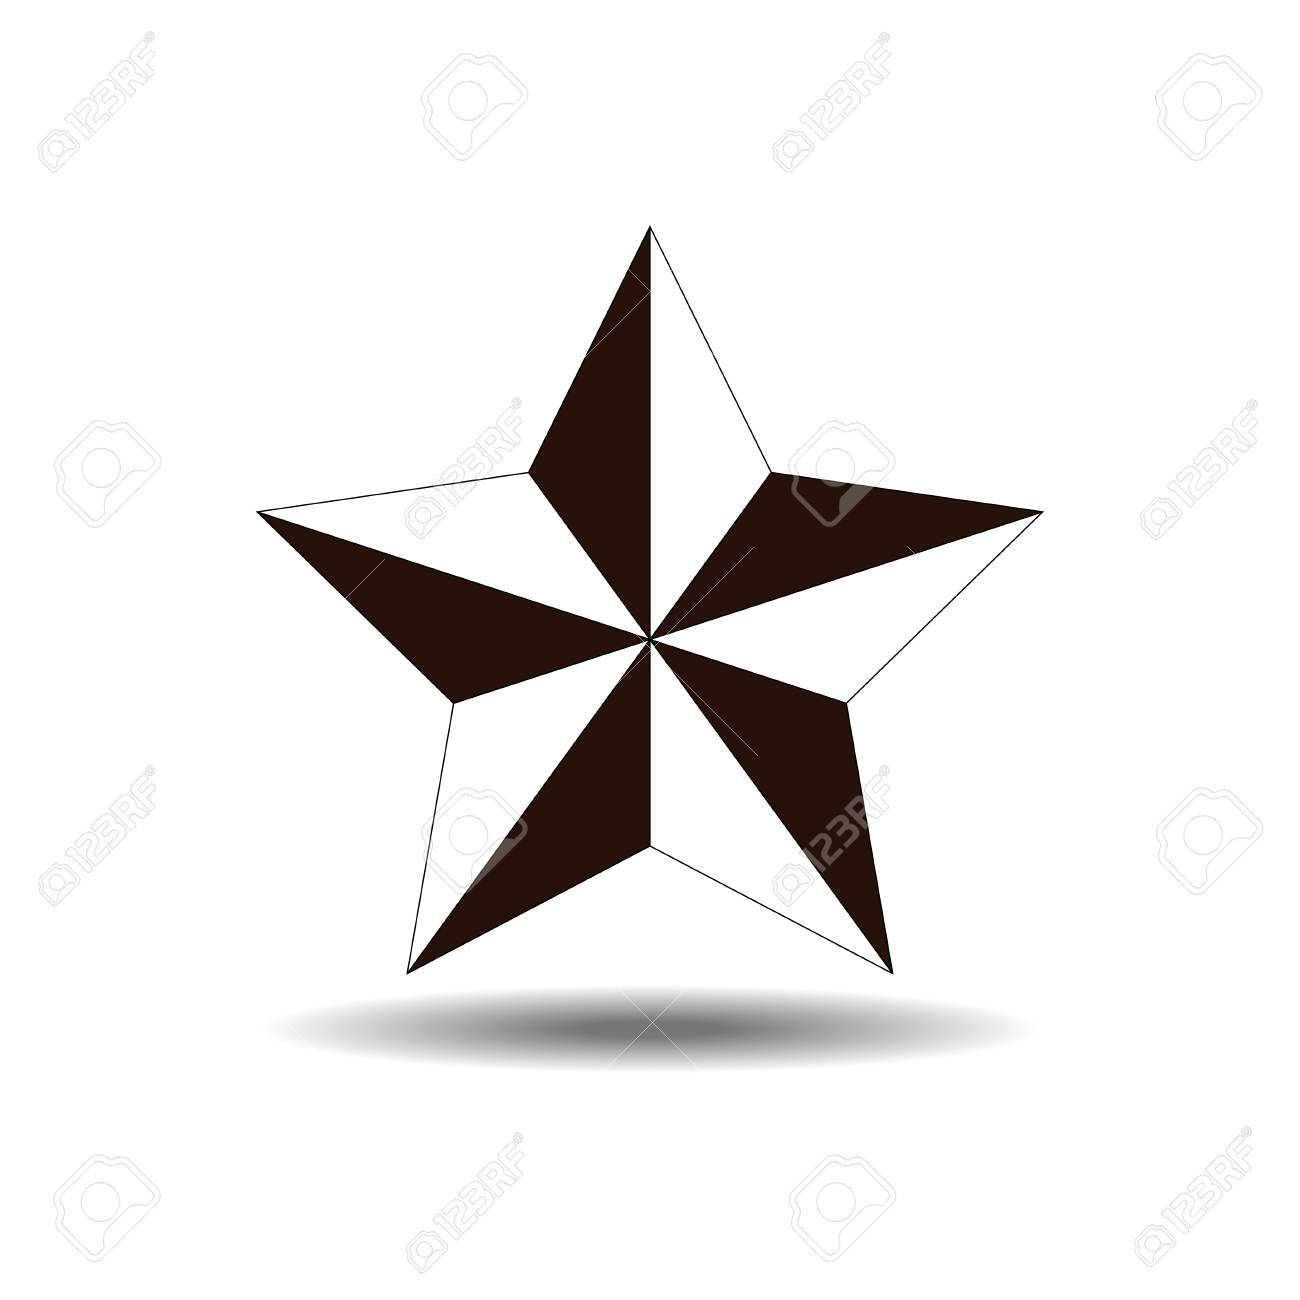 nautical star royalty free cliparts vectors and stock illustration rh 123rf com  nautical star vector download